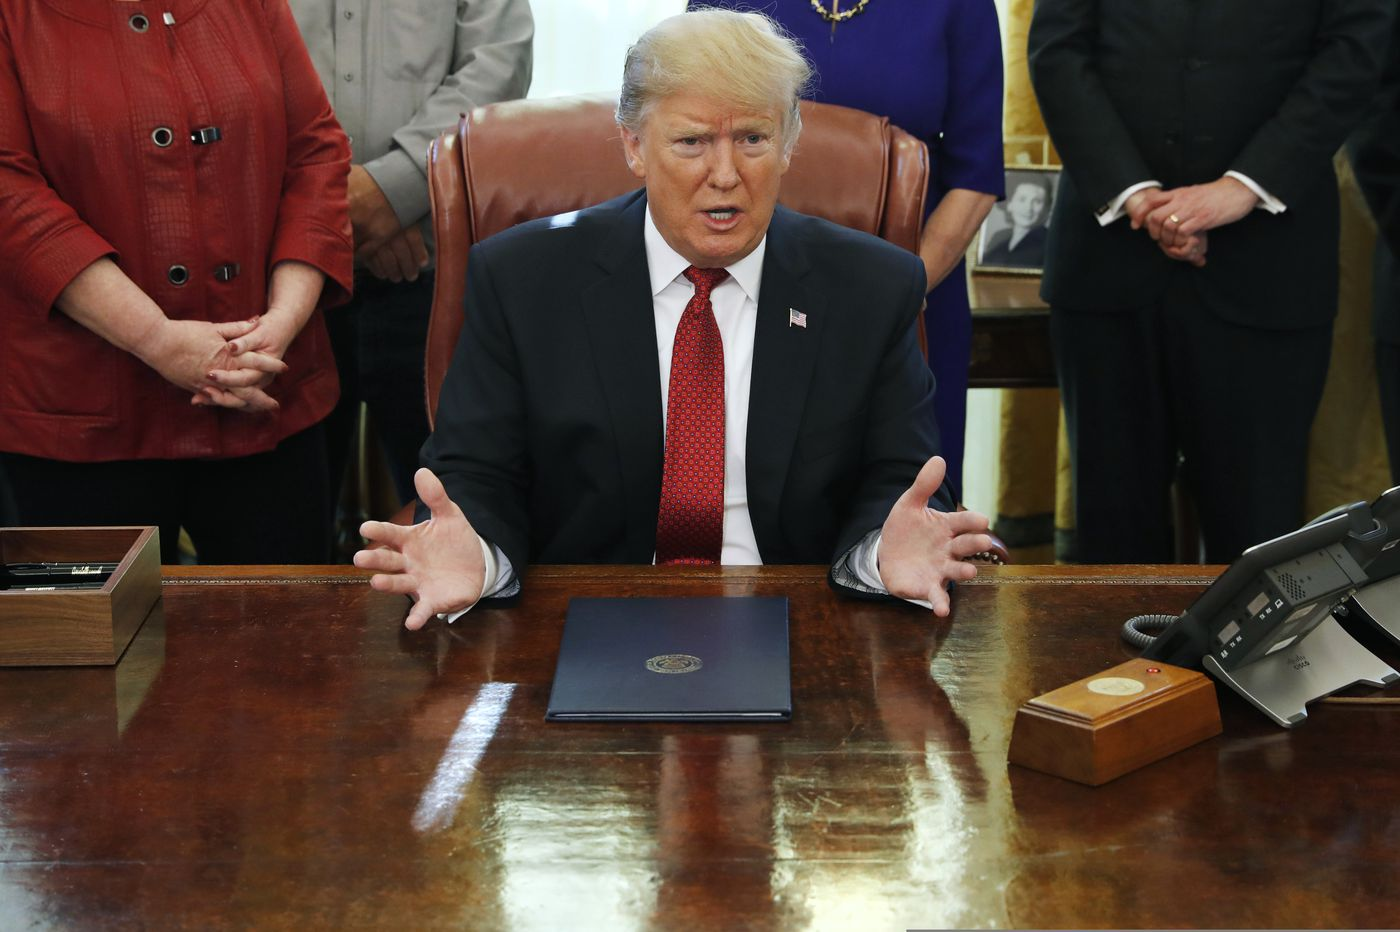 Trump Mulls Emergency Declaration to Build Border Wall